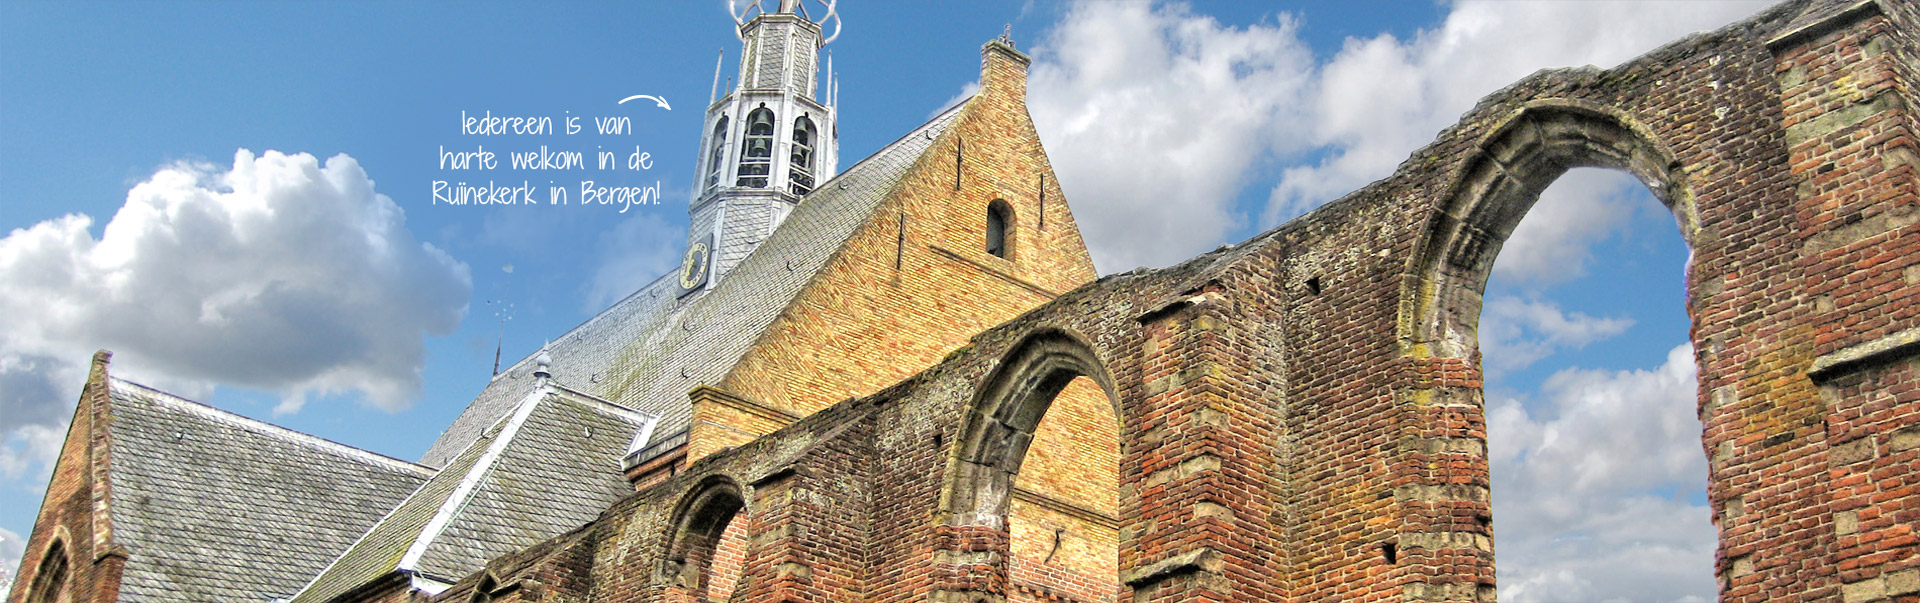 header-ruine-kerk-in-bergen